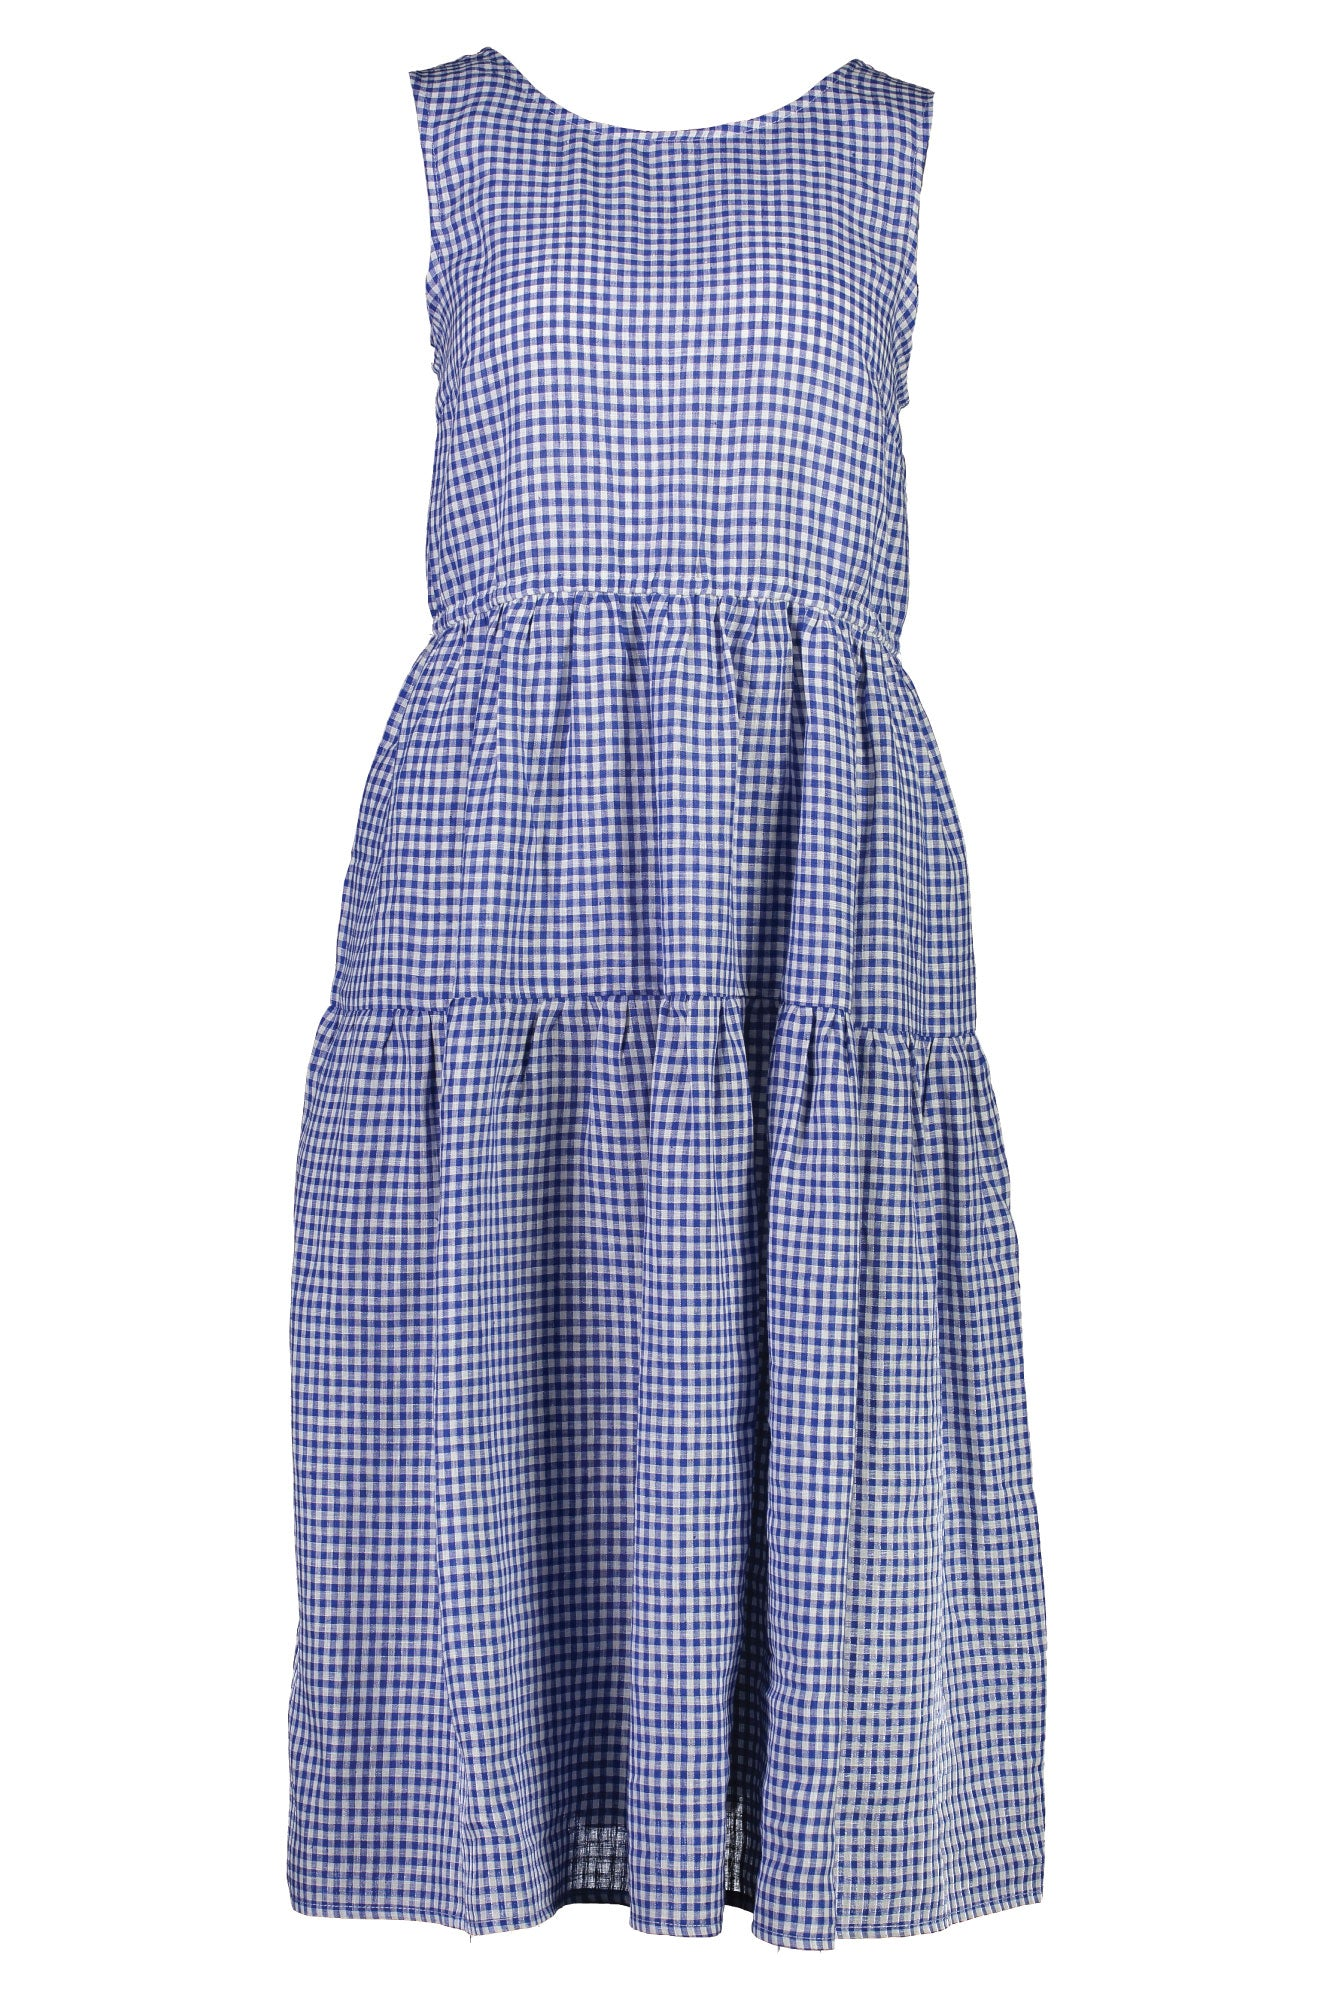 BFF Dress in Blue Gingham - hej hej